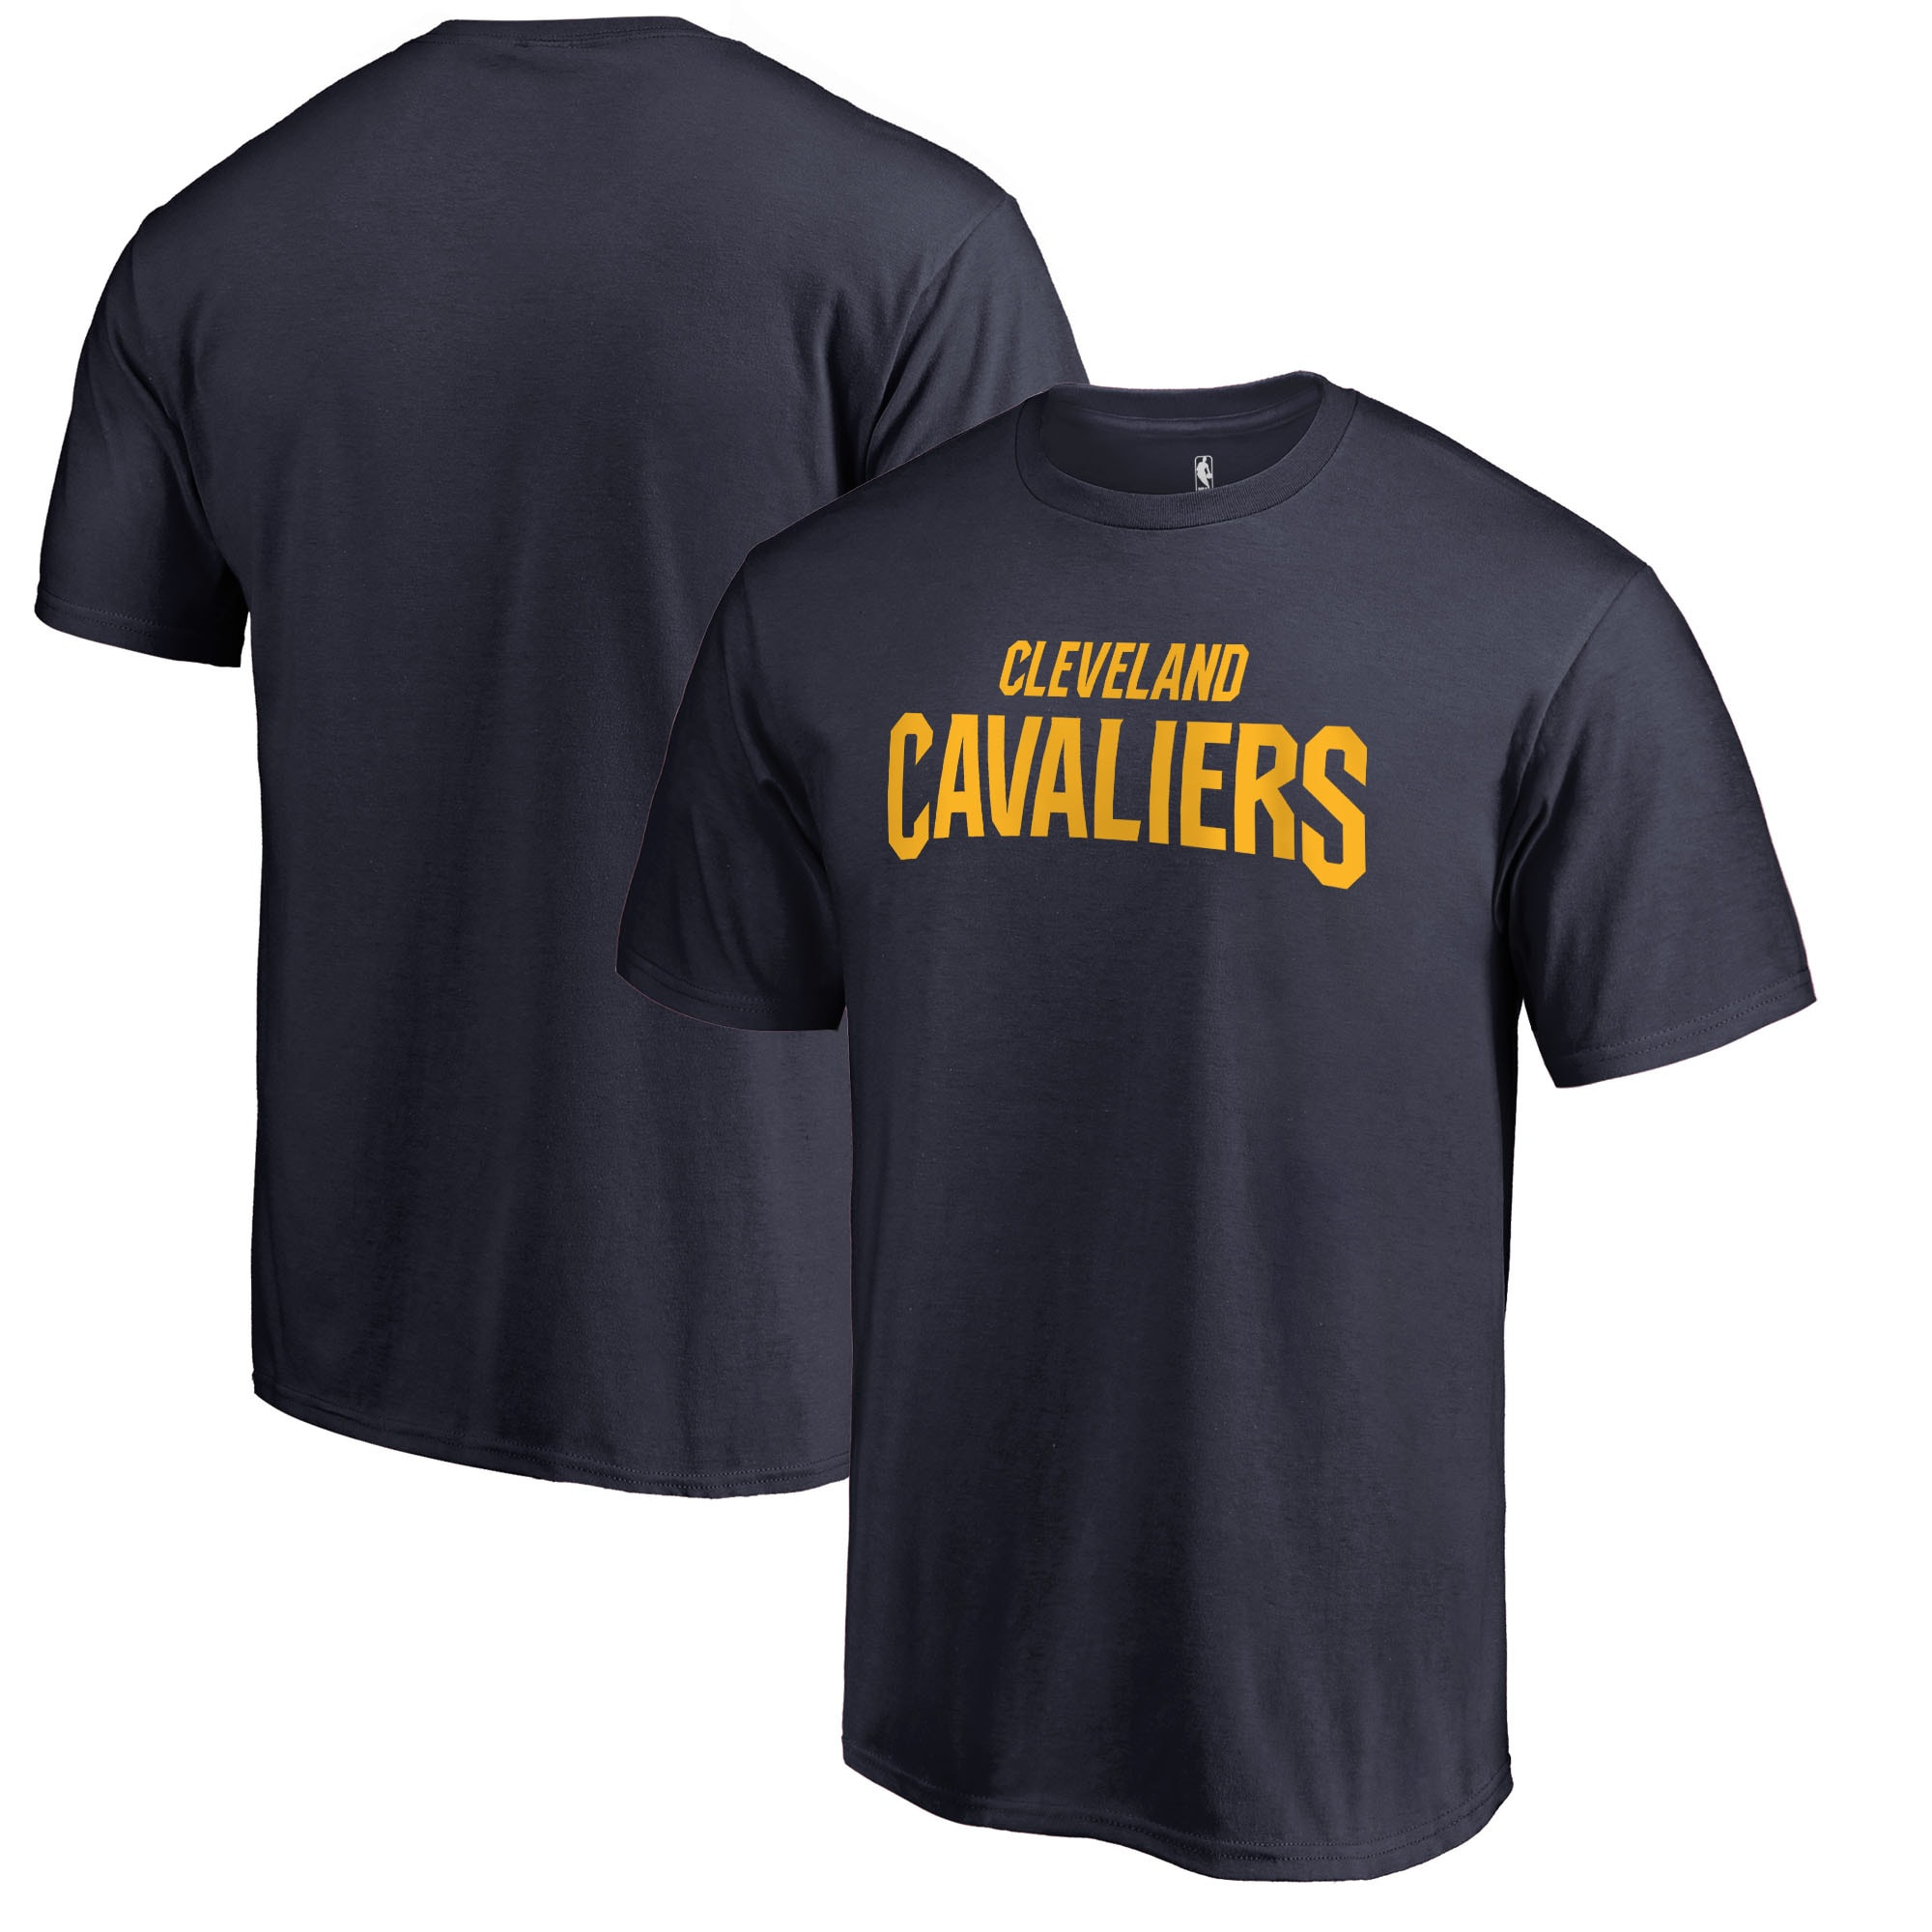 Cleveland Cavaliers Fanatics Branded Primary Wordmark T-Shirt - Navy